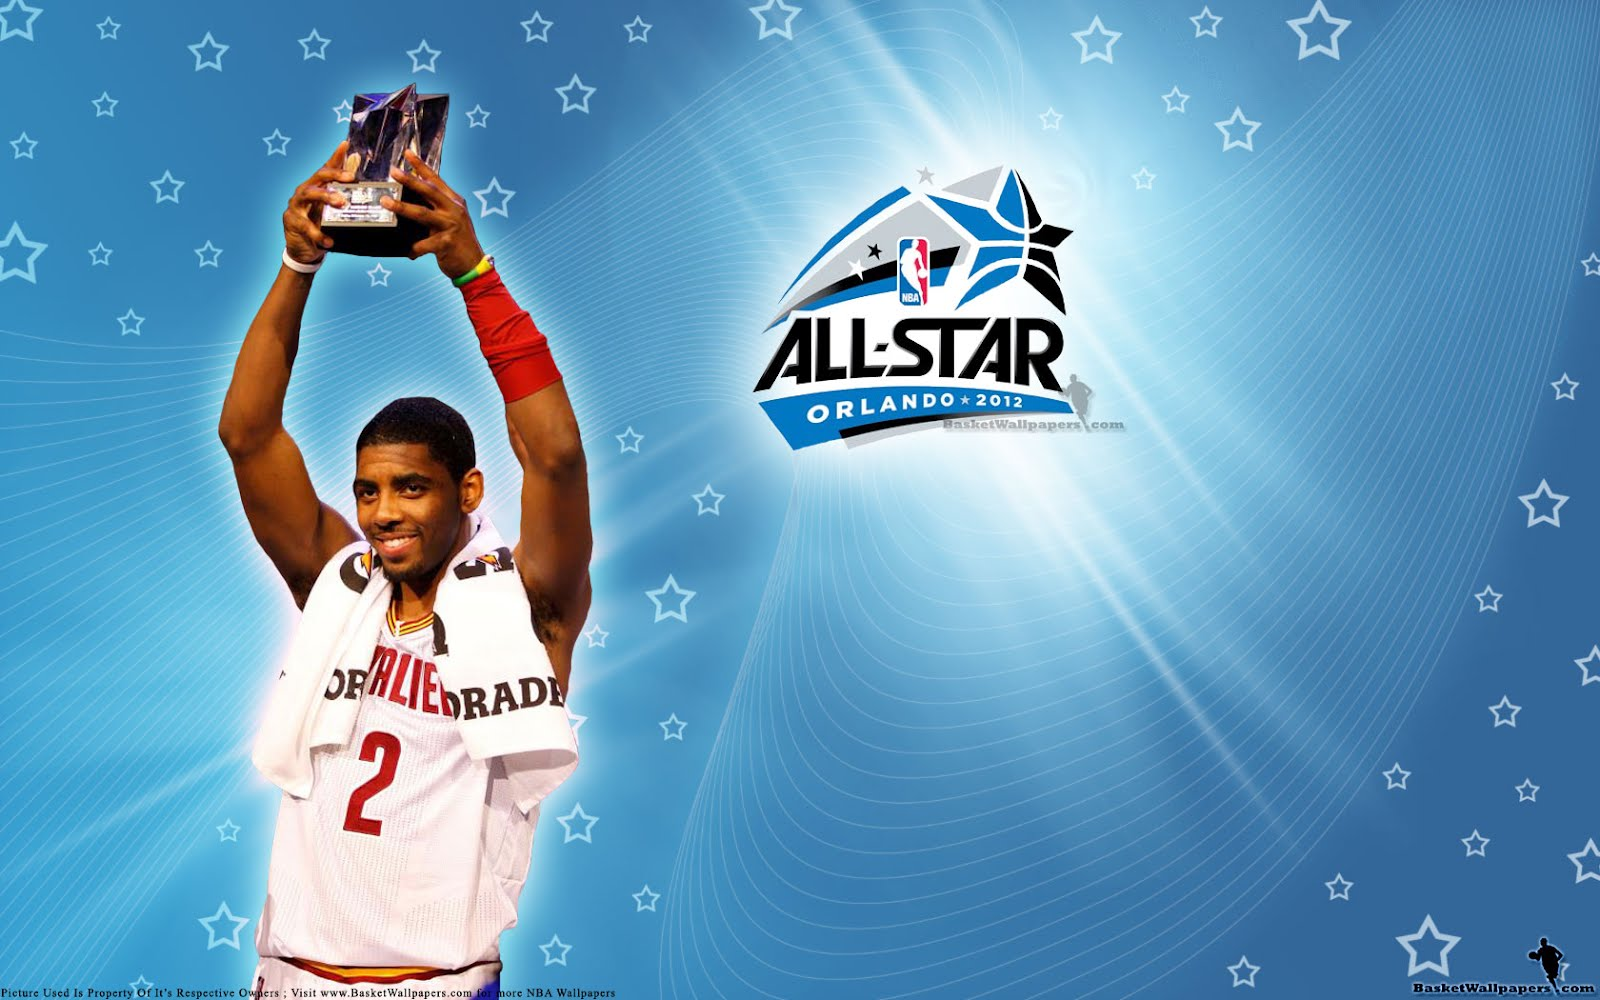 2012 nba all star mvp wallpaper awardee big fan of nba daily update wallpaper of tony parker kevin love who won 3pts shootout rising stars challenge with kyrie irving holding mvp trophy above his head and kevin durant voltagebd Choice Image